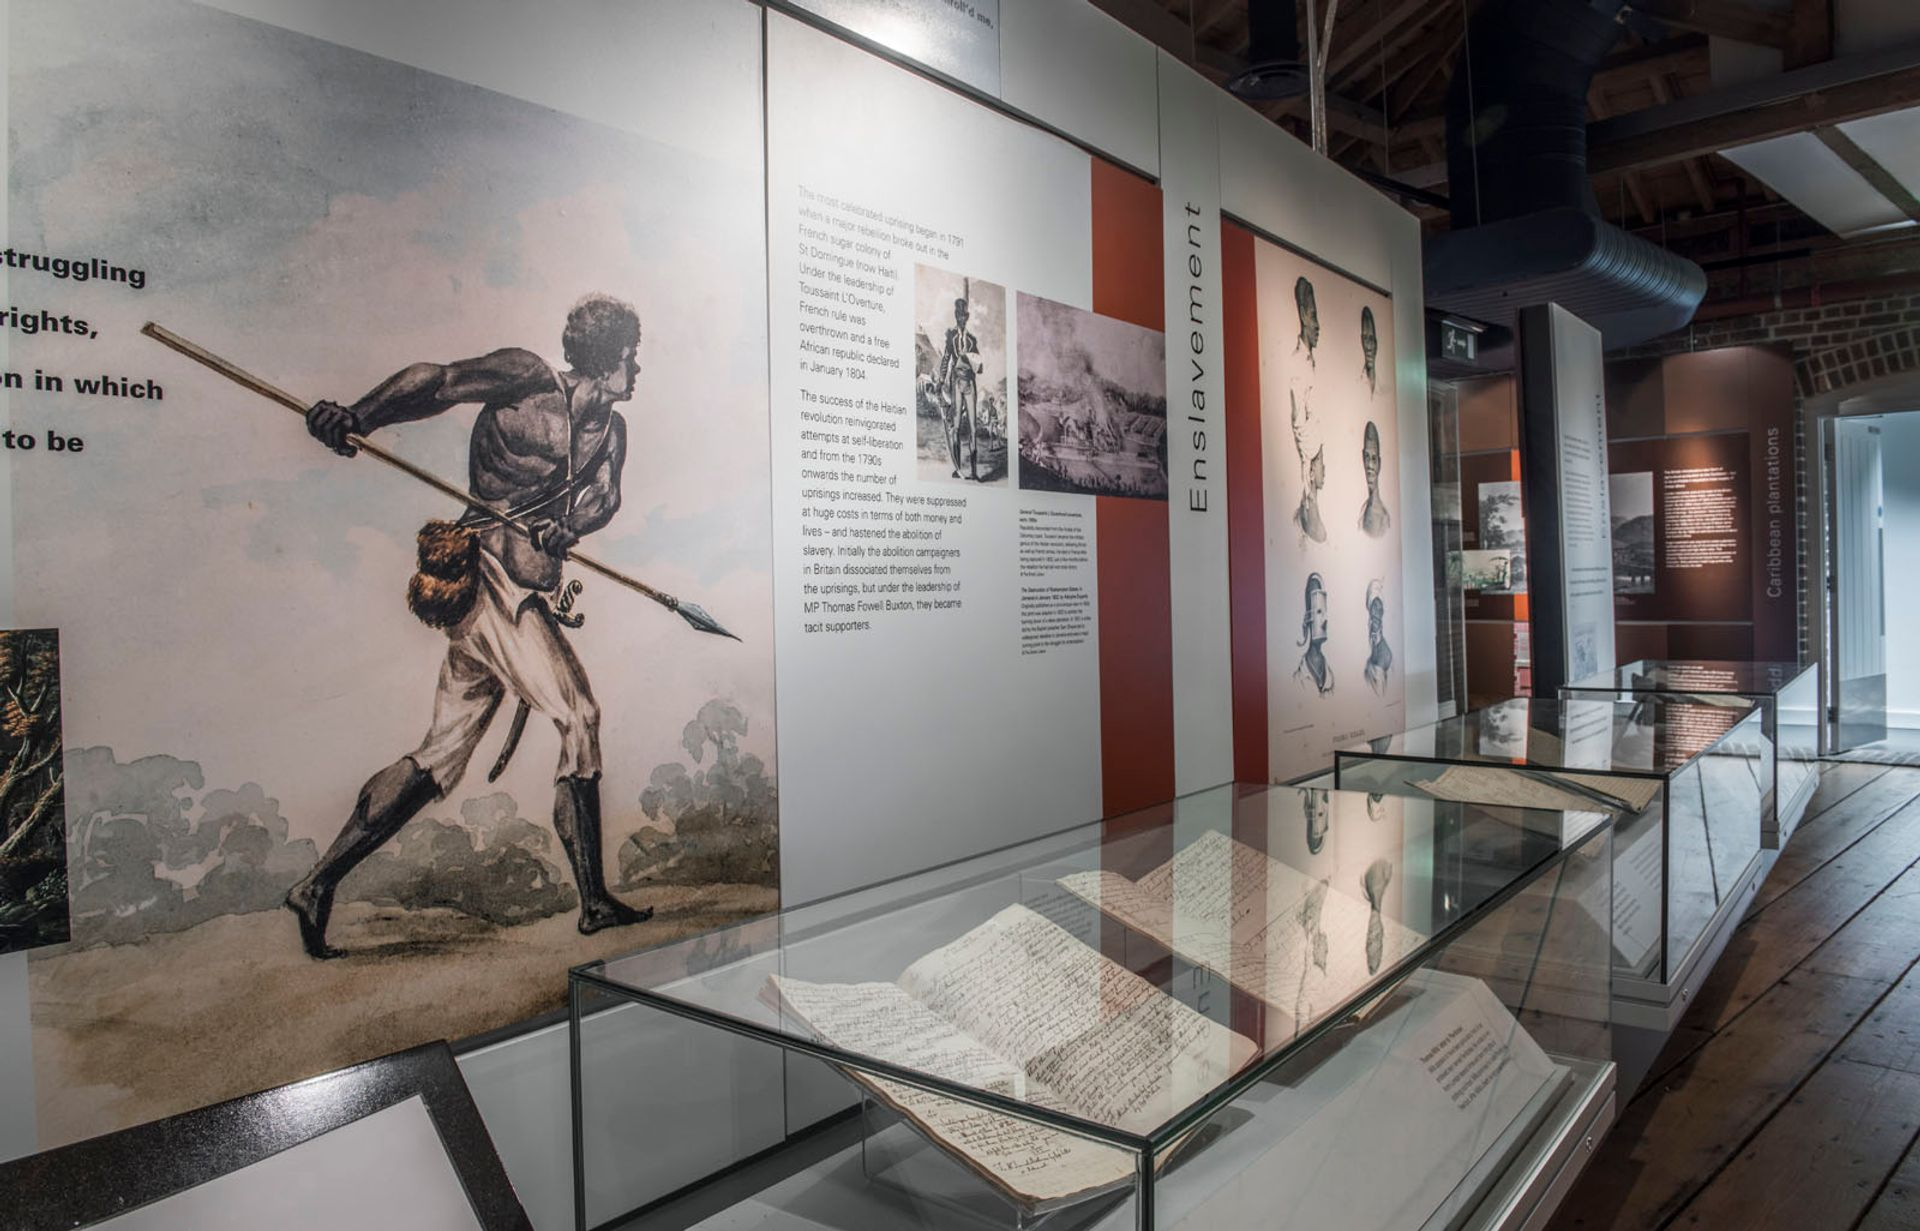 Installation view of the London, Sugar, Slavery exhibition at the Museum of London, Docklands, outside which Isaiah Ogundele protested the display of the Benin Bronzes © Museum of London